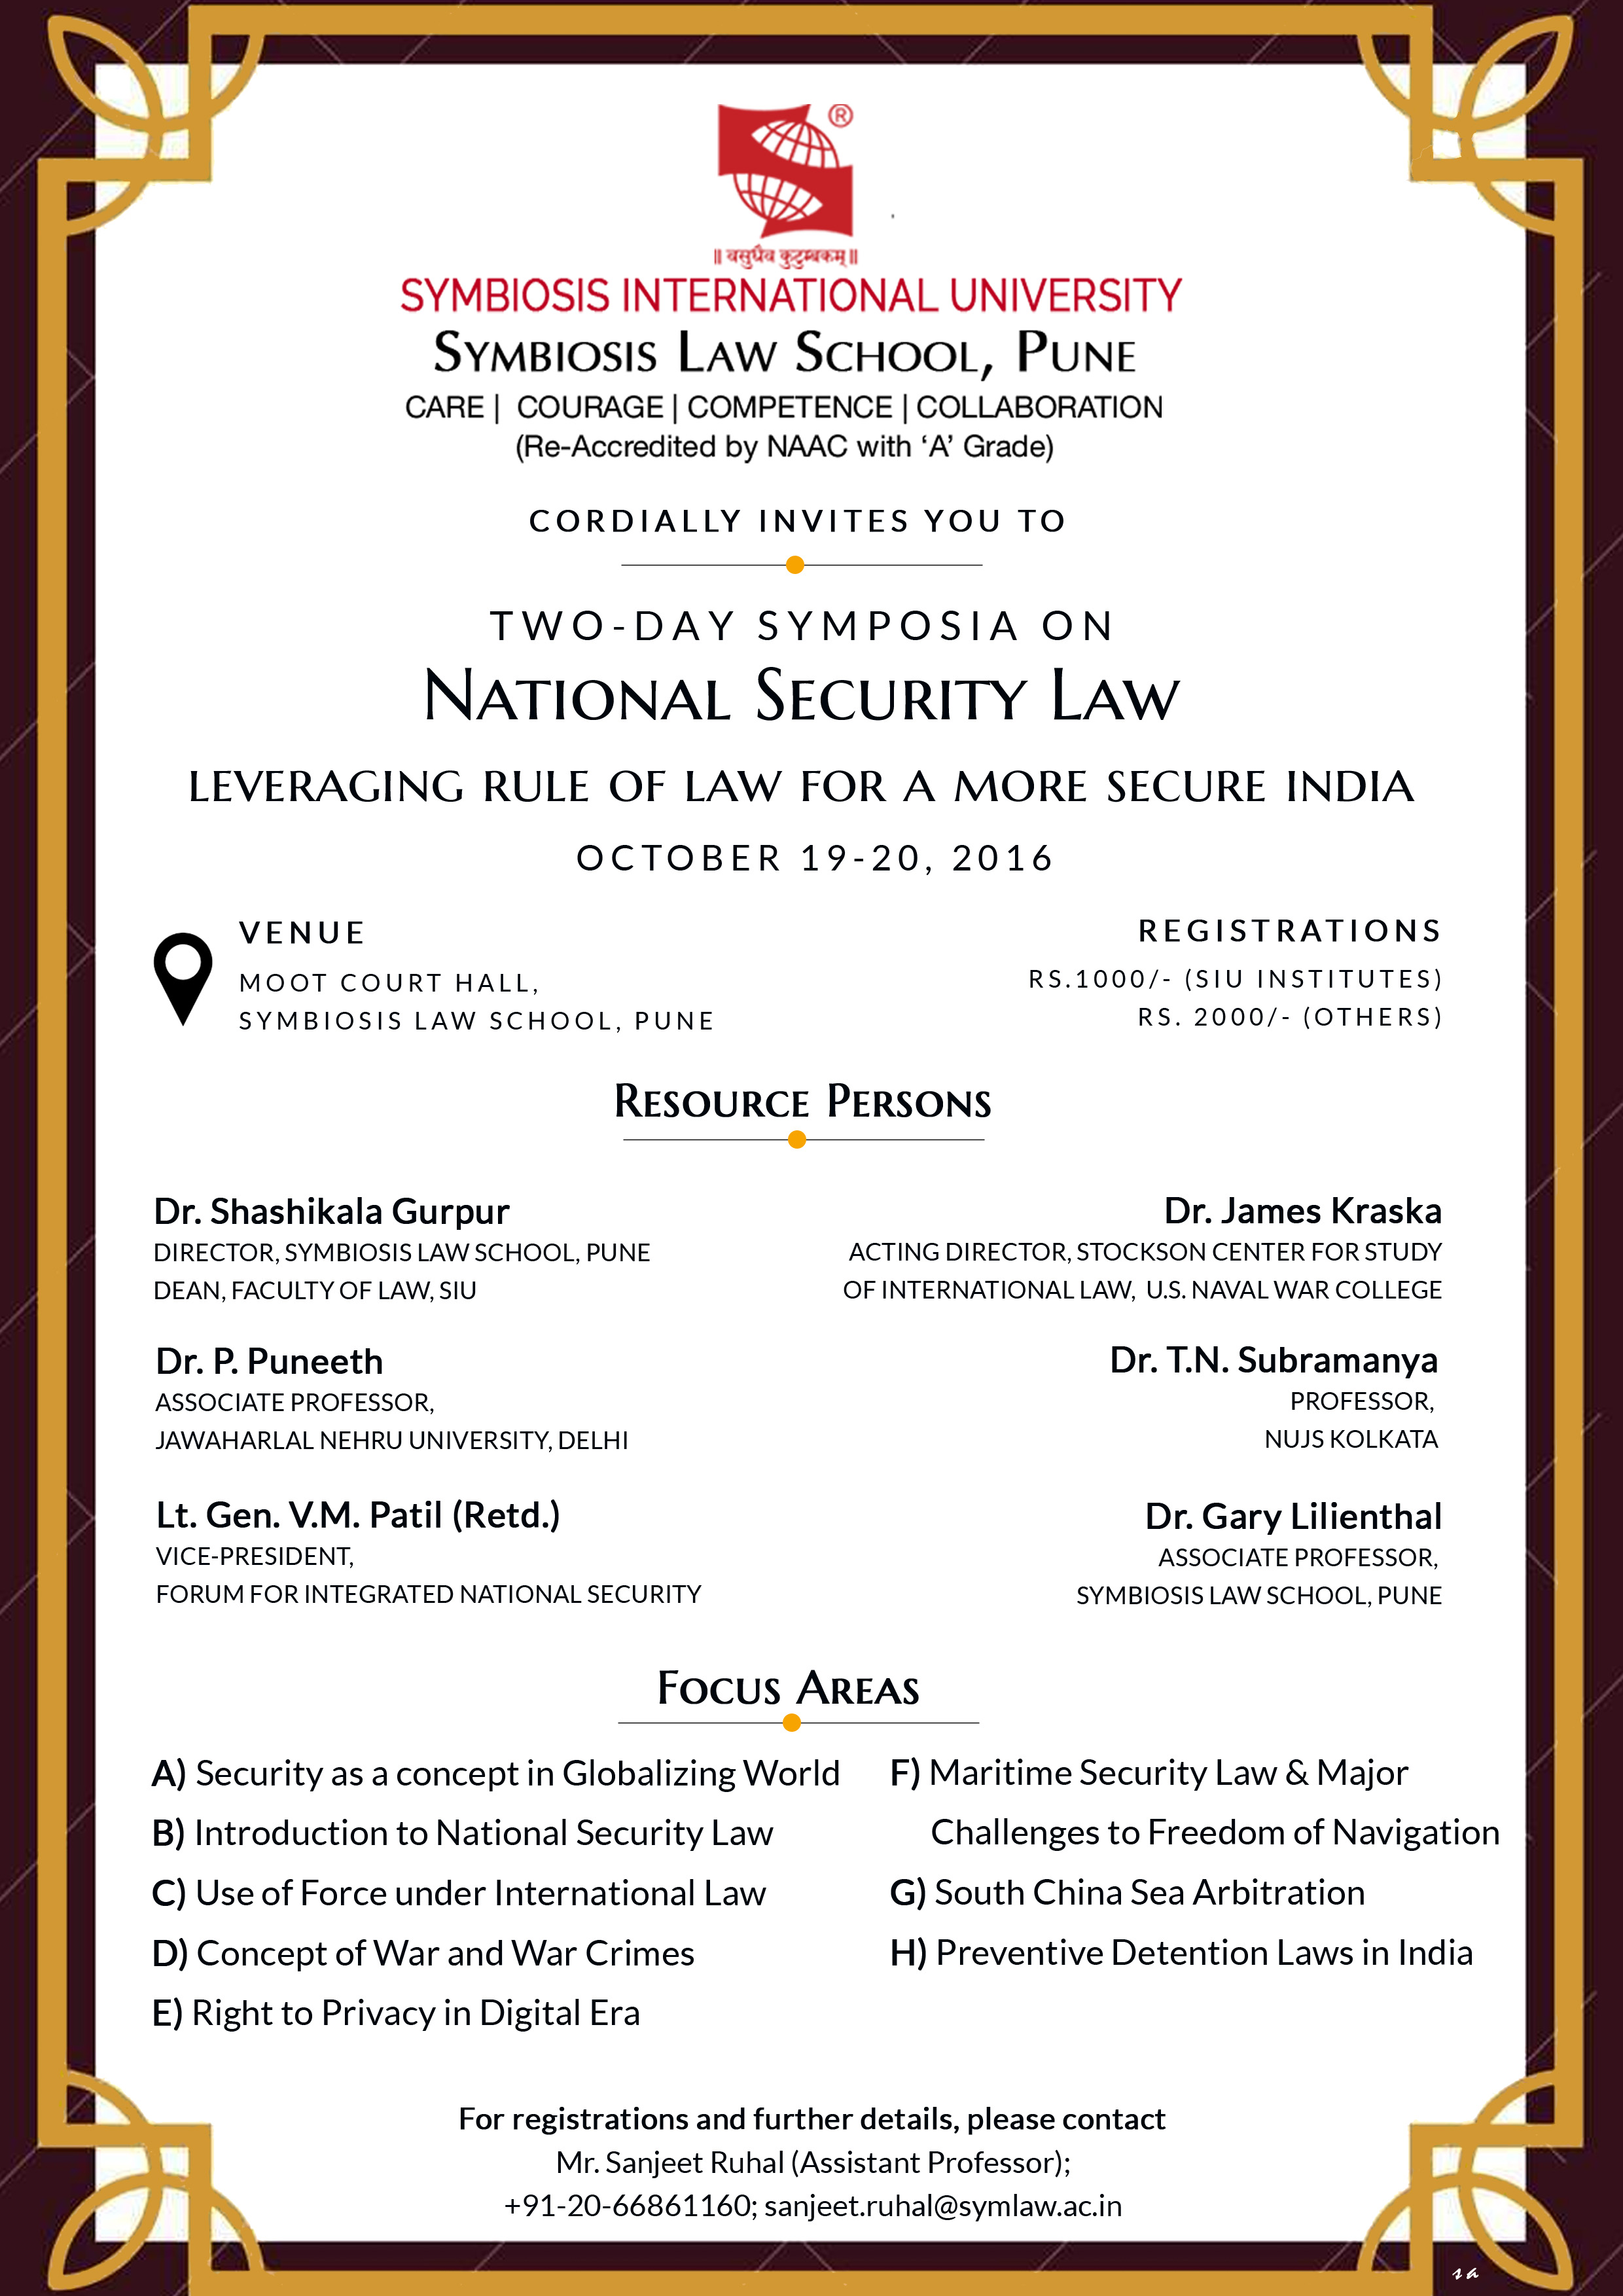 Symbiosis Law School 2 Day Symposium on National Security Laws: Leveraging Rule of Law for a More Secure India